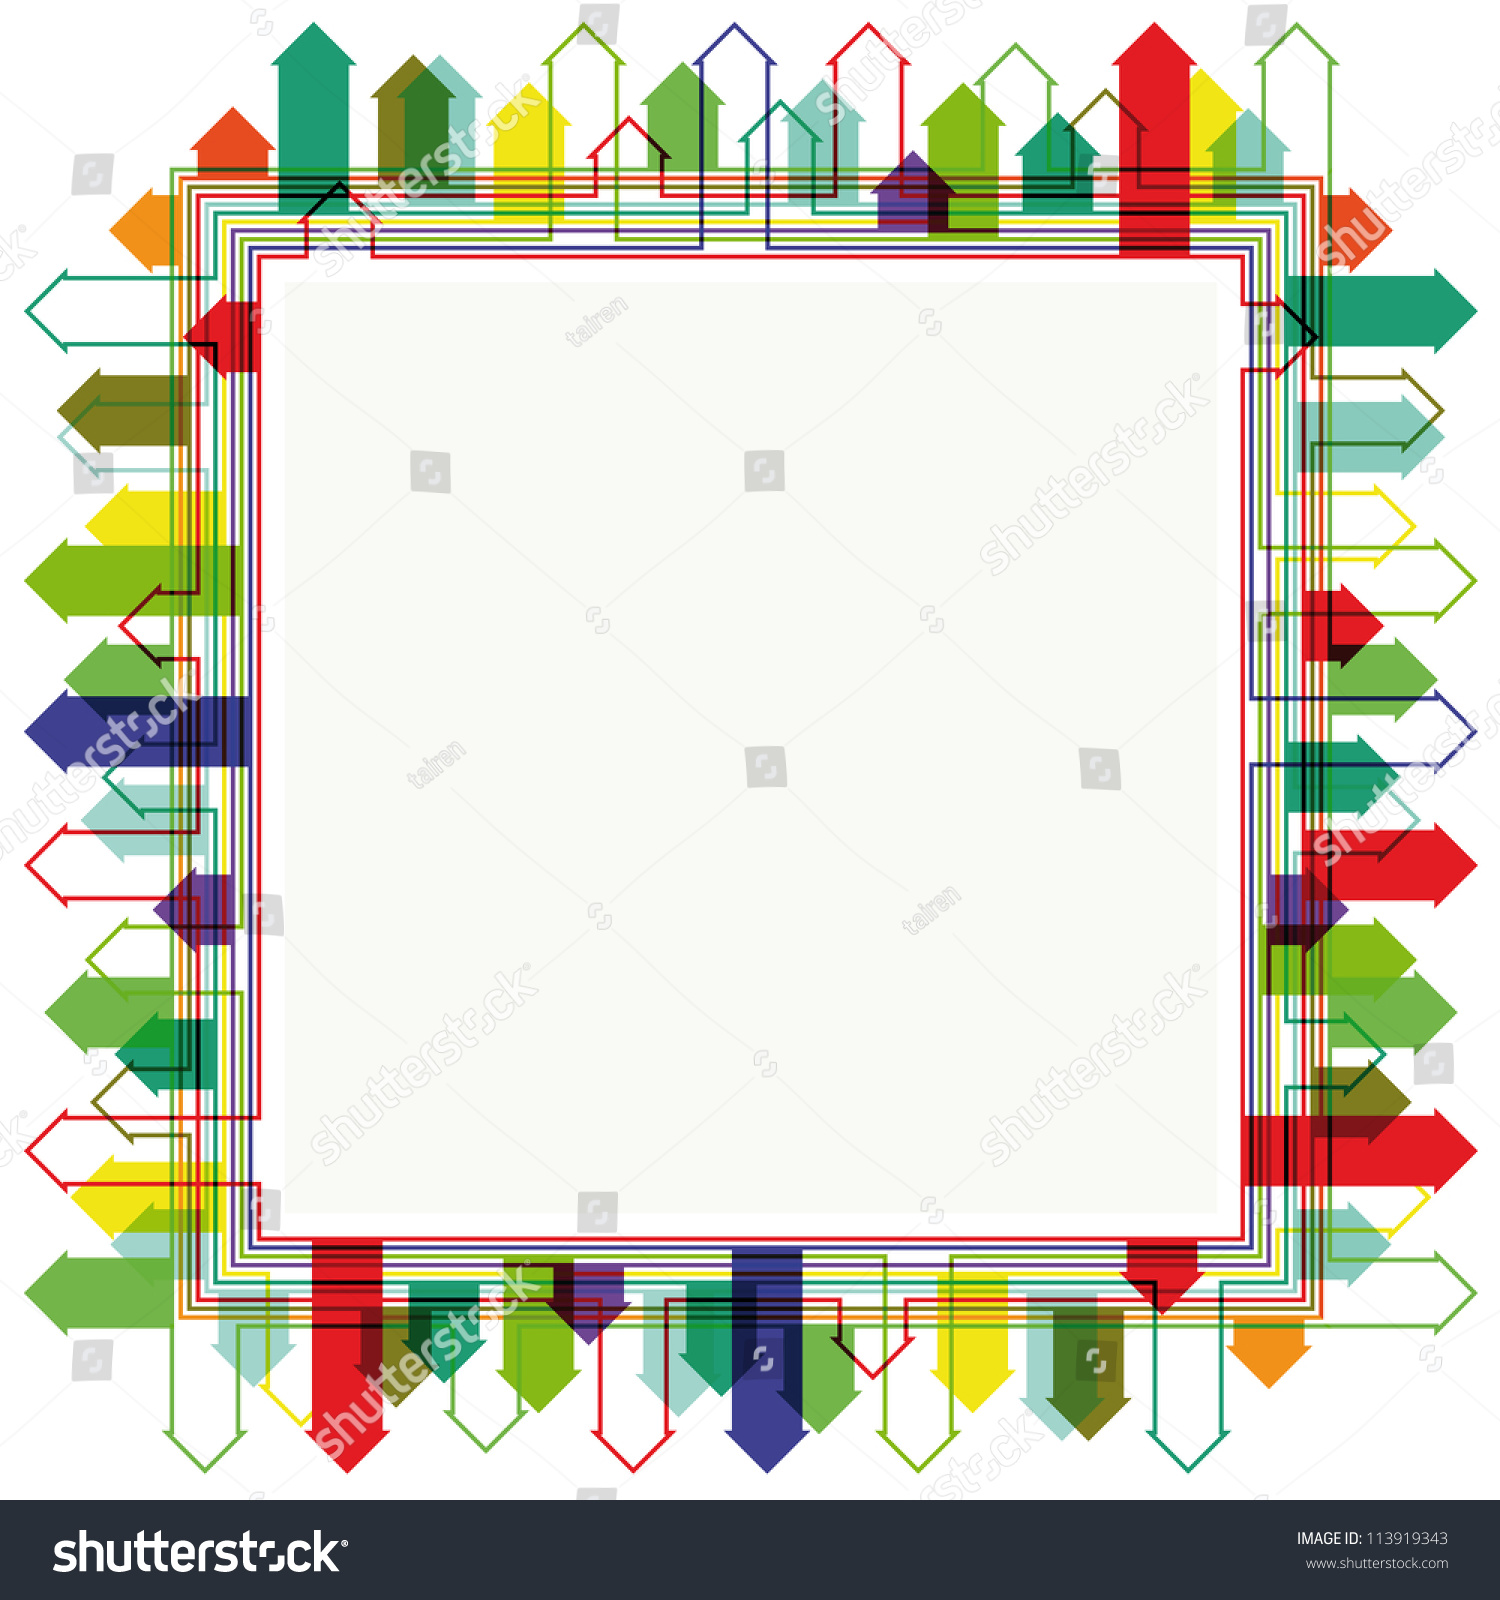 Abstract Bright City Silhouette Frame Design Stock Vector 113919343 ...